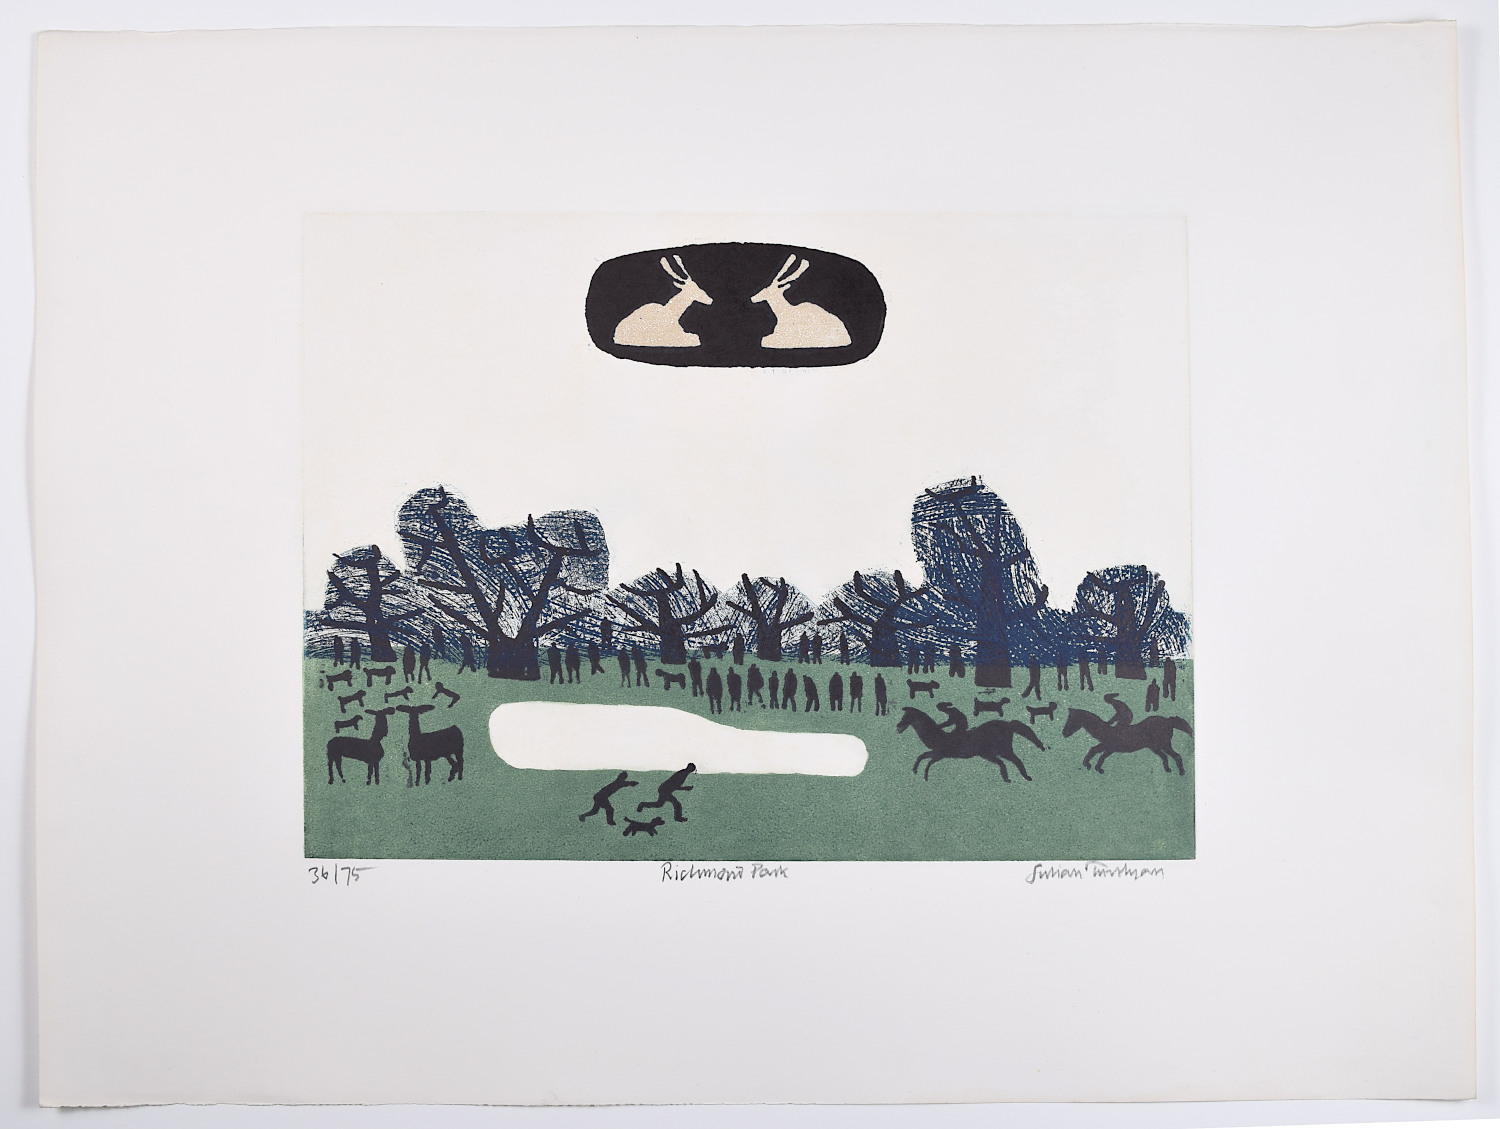 Julian Trevelyan Richmond Park Thames Suite etching print for sale